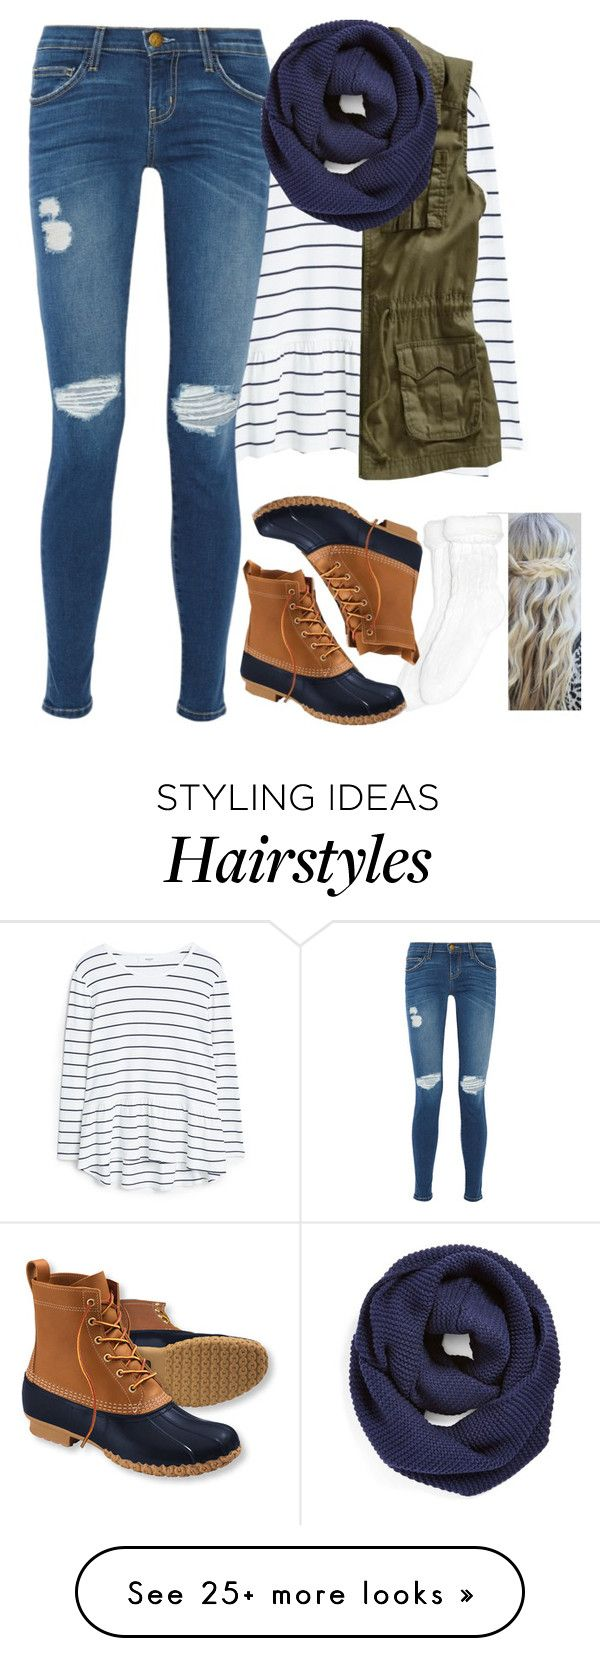 """"" 'Cause there's still, too long till the weekend."" "" by meljordrum on Polyvore featuring MANGO, Old Navy, Current/Elliott, Xhilaration, L.L.Bean, BP., women's clothing, women's fashion, women and female"